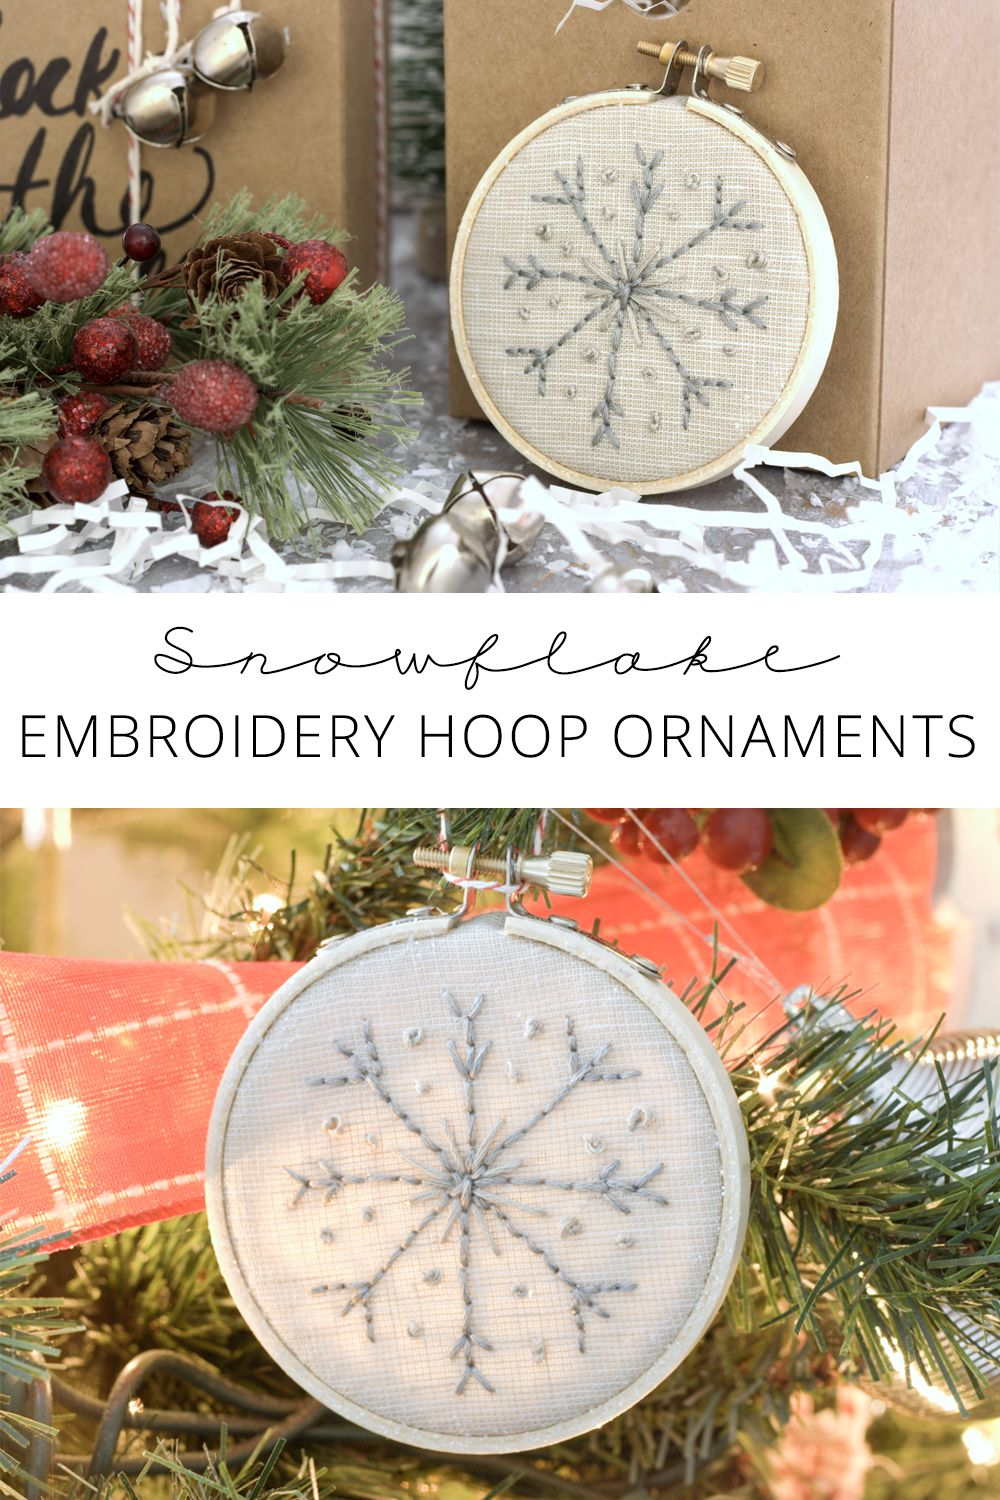 Make Your Own Snowflake Embroidery Hoop Ornaments | Embroidery ...